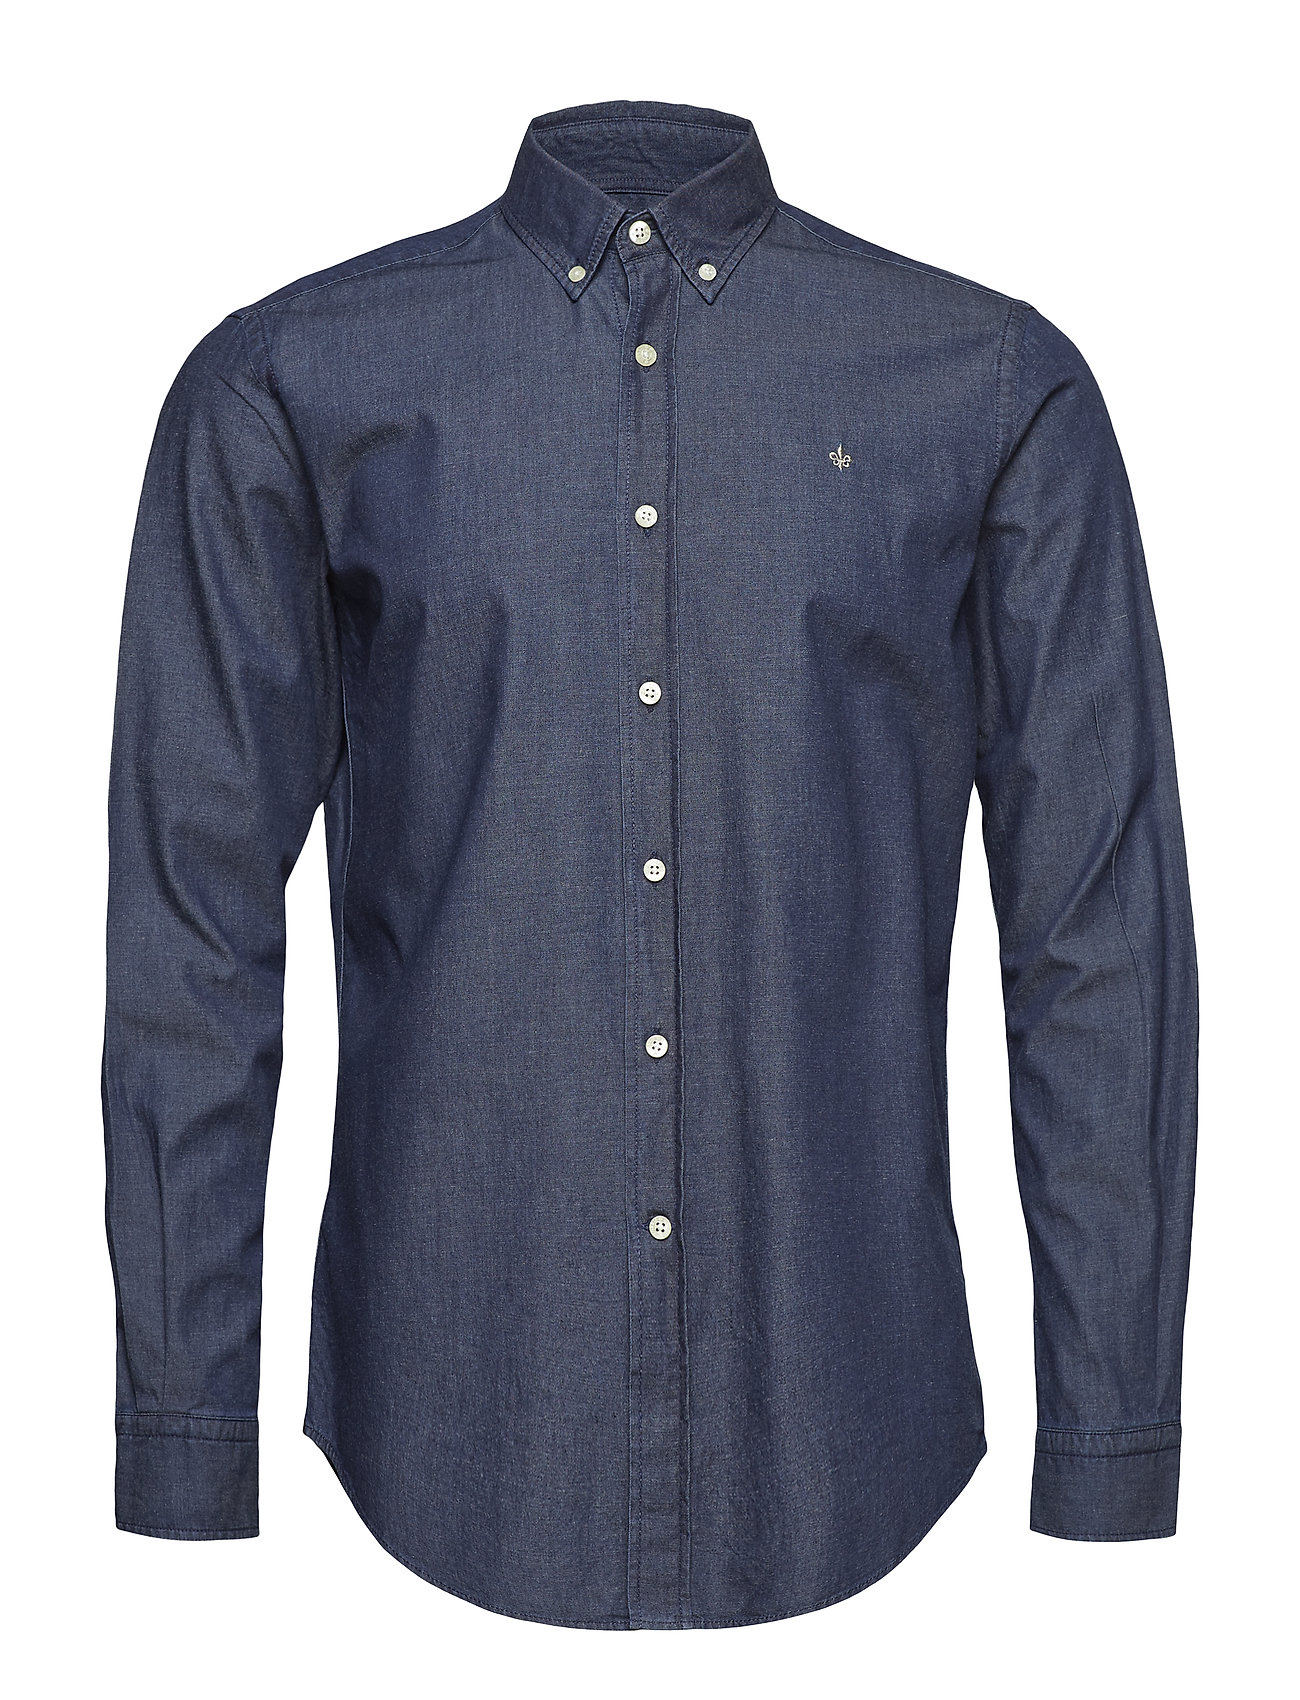 ShirtblueMorris Julian Julian Denim Down Button Button tsChdxrQB